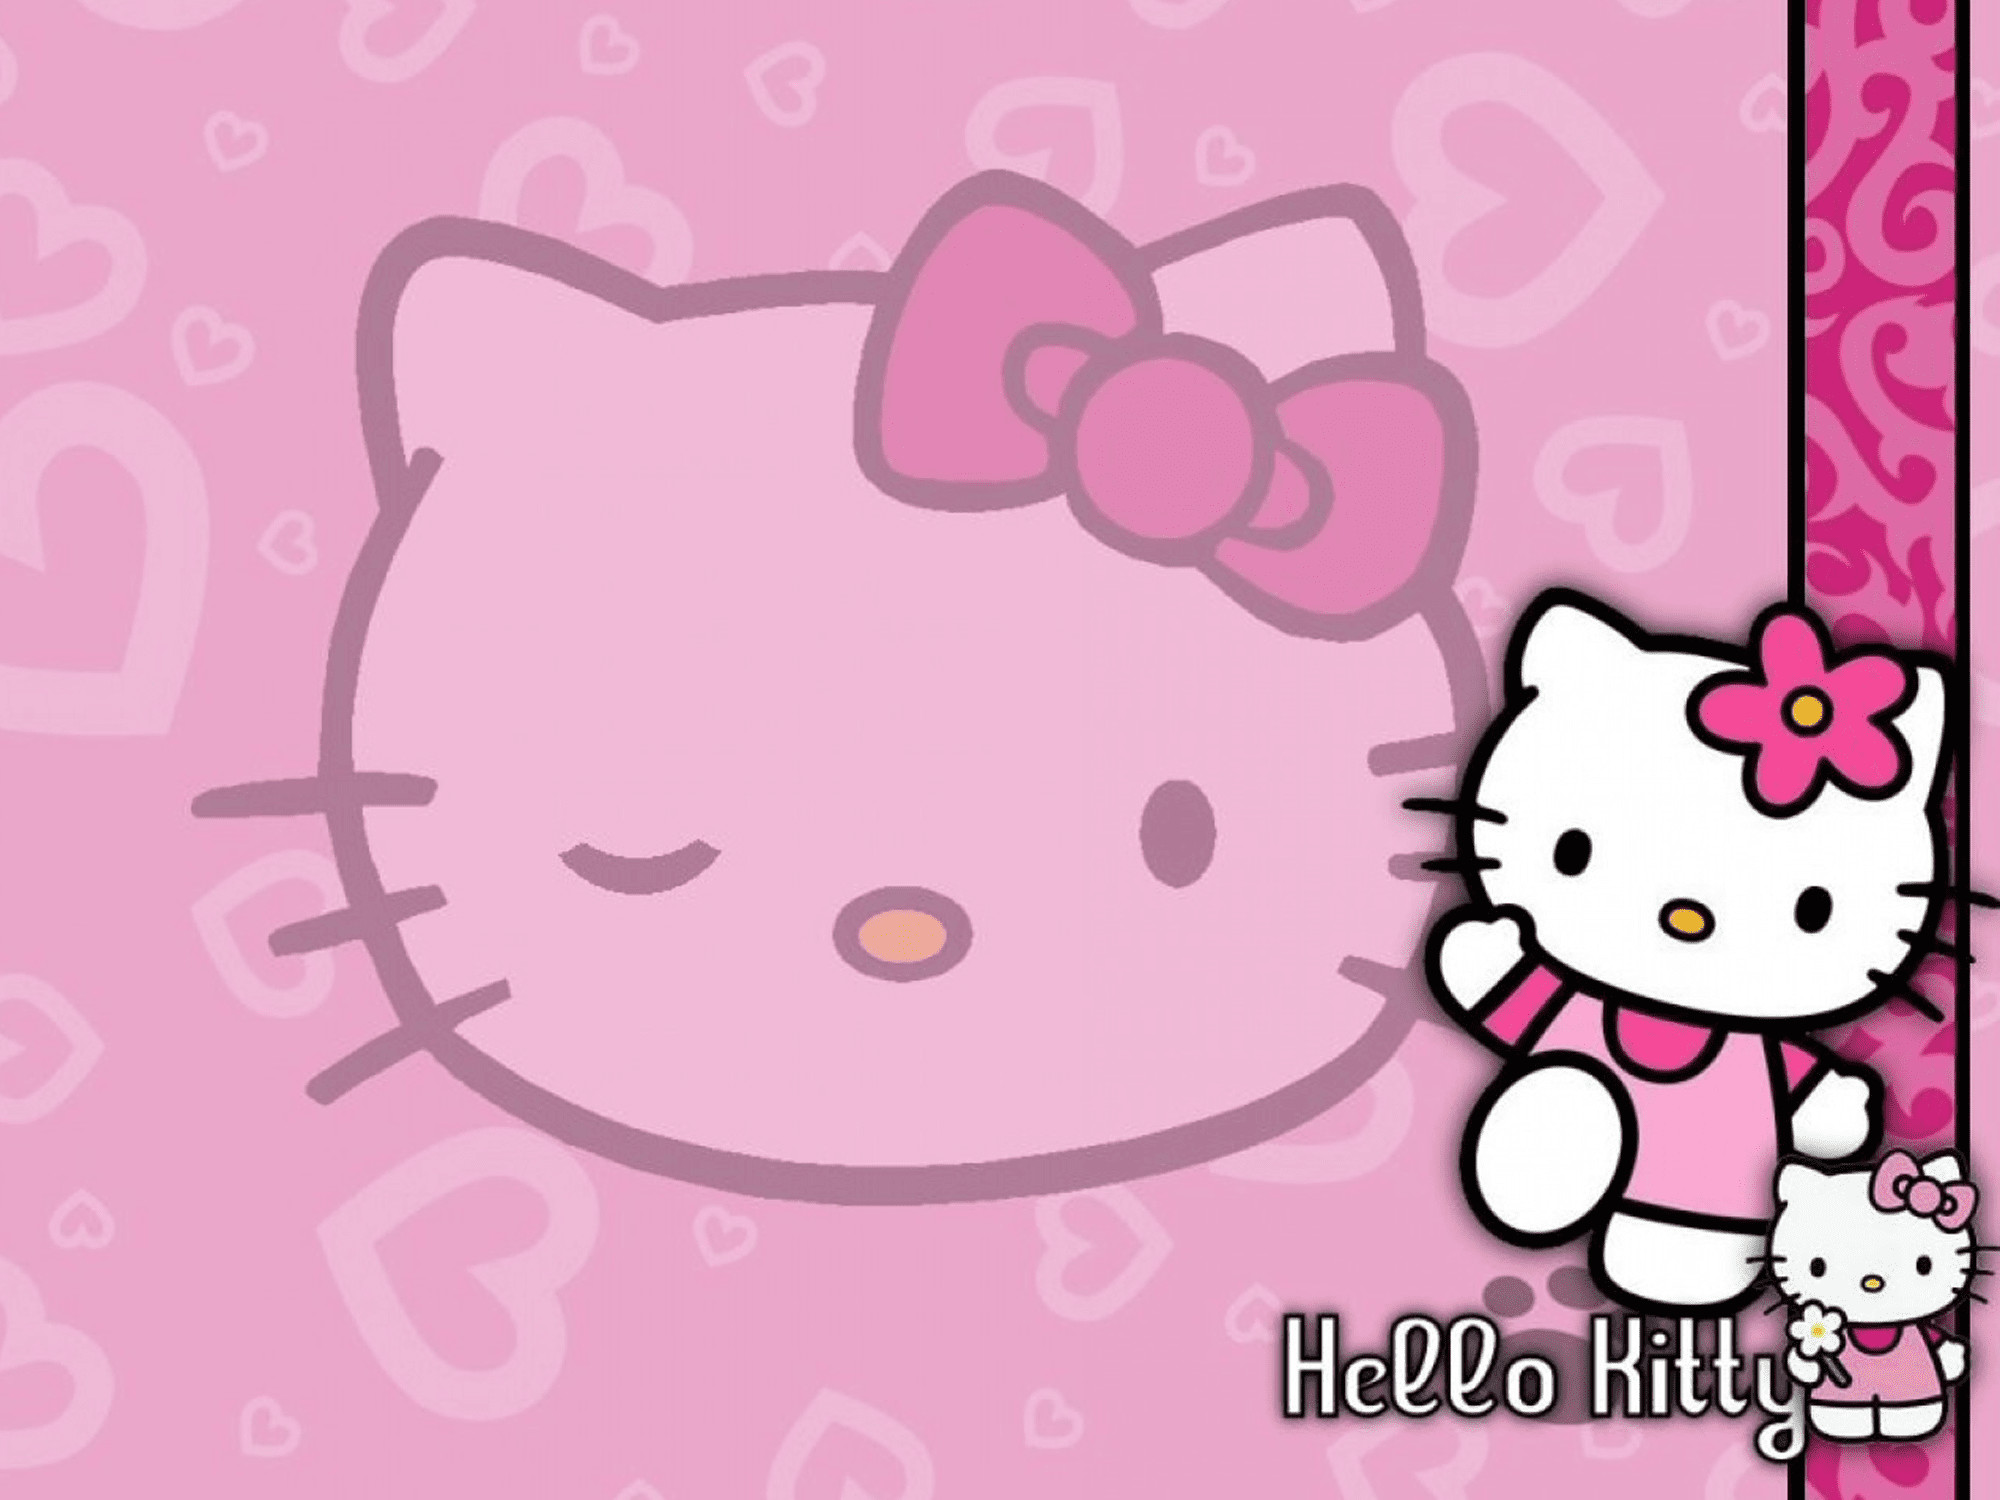 2000x1500 Pretty In Pink Hello Kitty Wallpaper